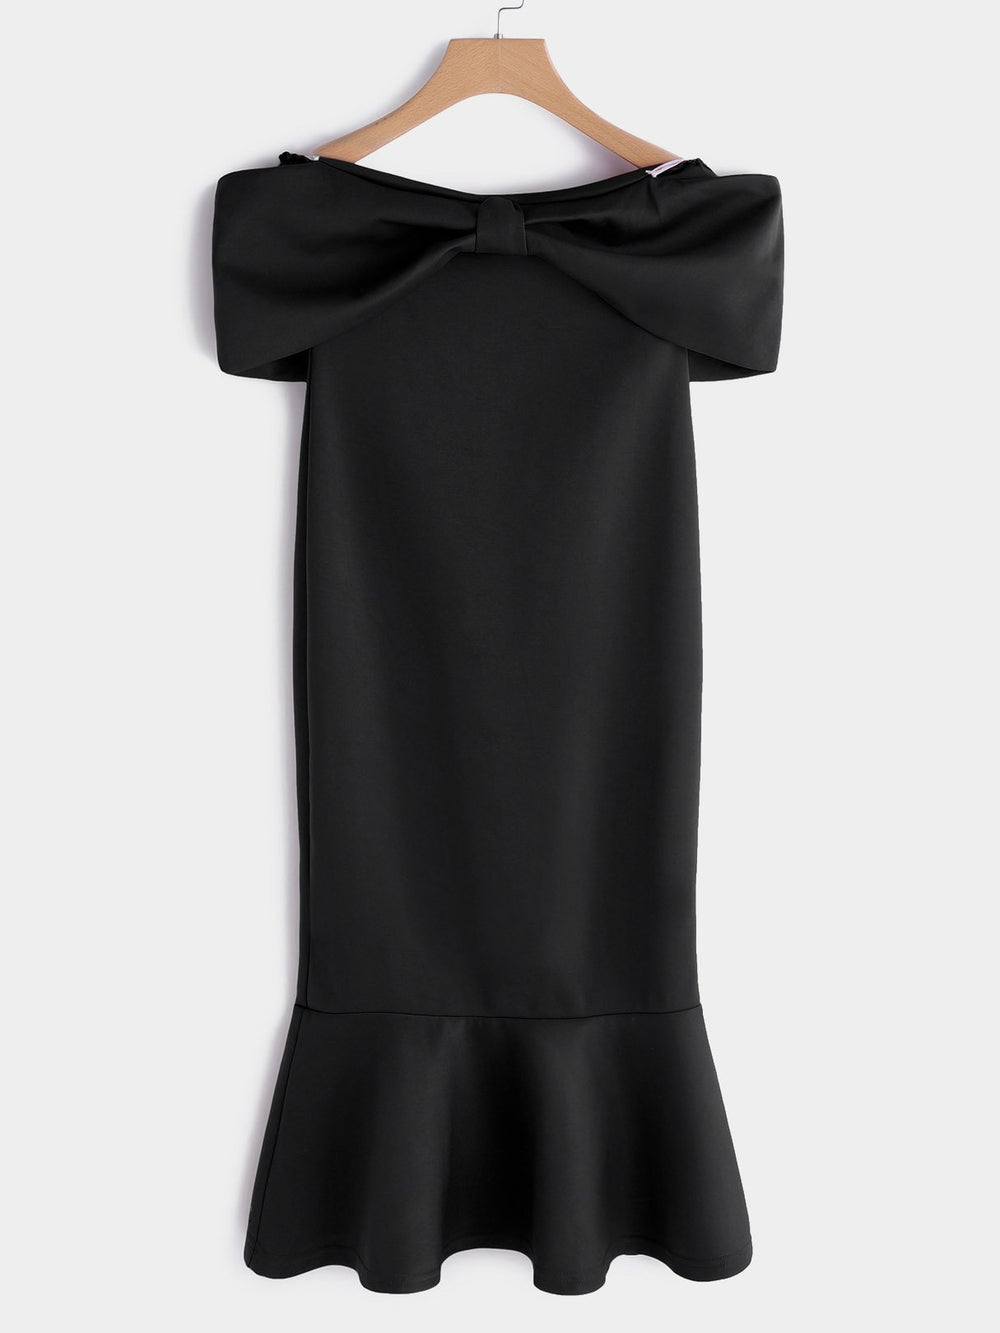 Off The Shoulder Plain Bowknot Short Sleeve Flounced Hem Black Dresses